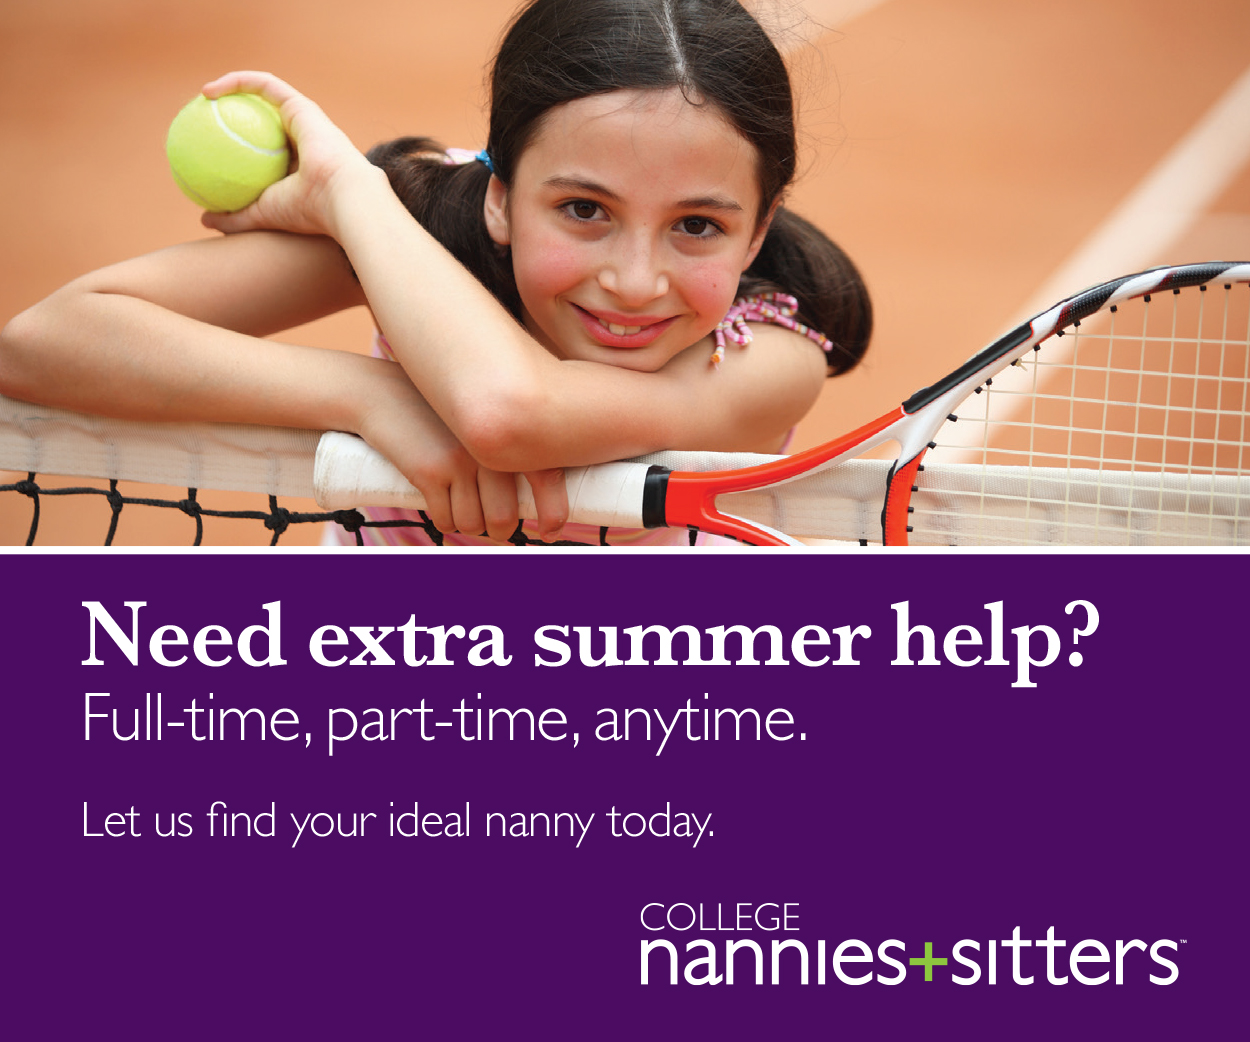 Ad for College Nannies and Tutors